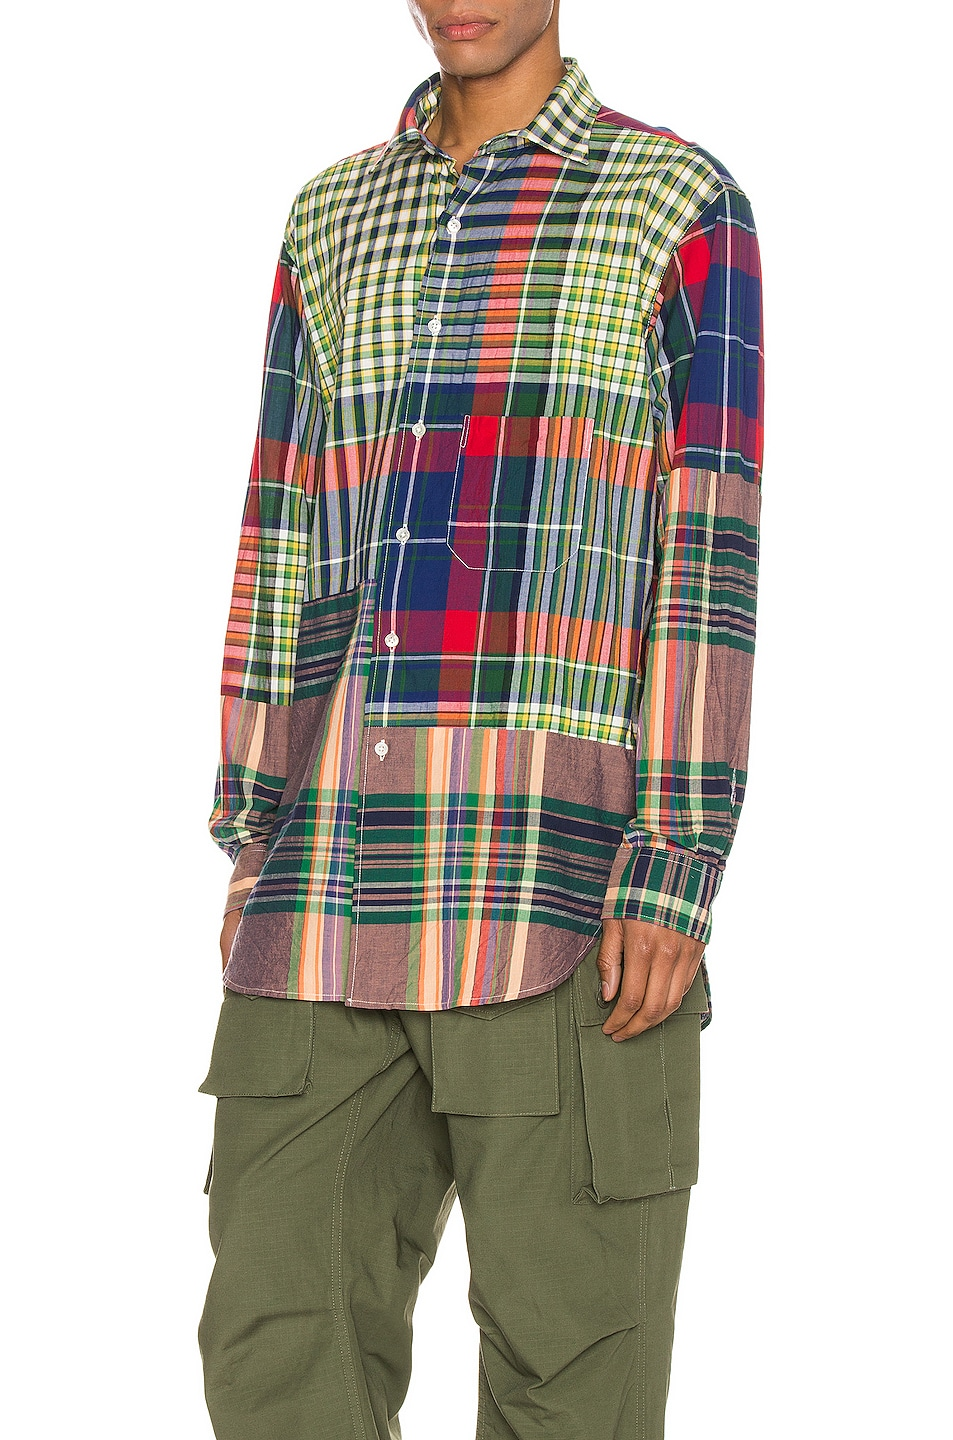 Image 3 of Engineered Garments Spread Collar Shirt in Red & Blue & Green Big Madras Plaid